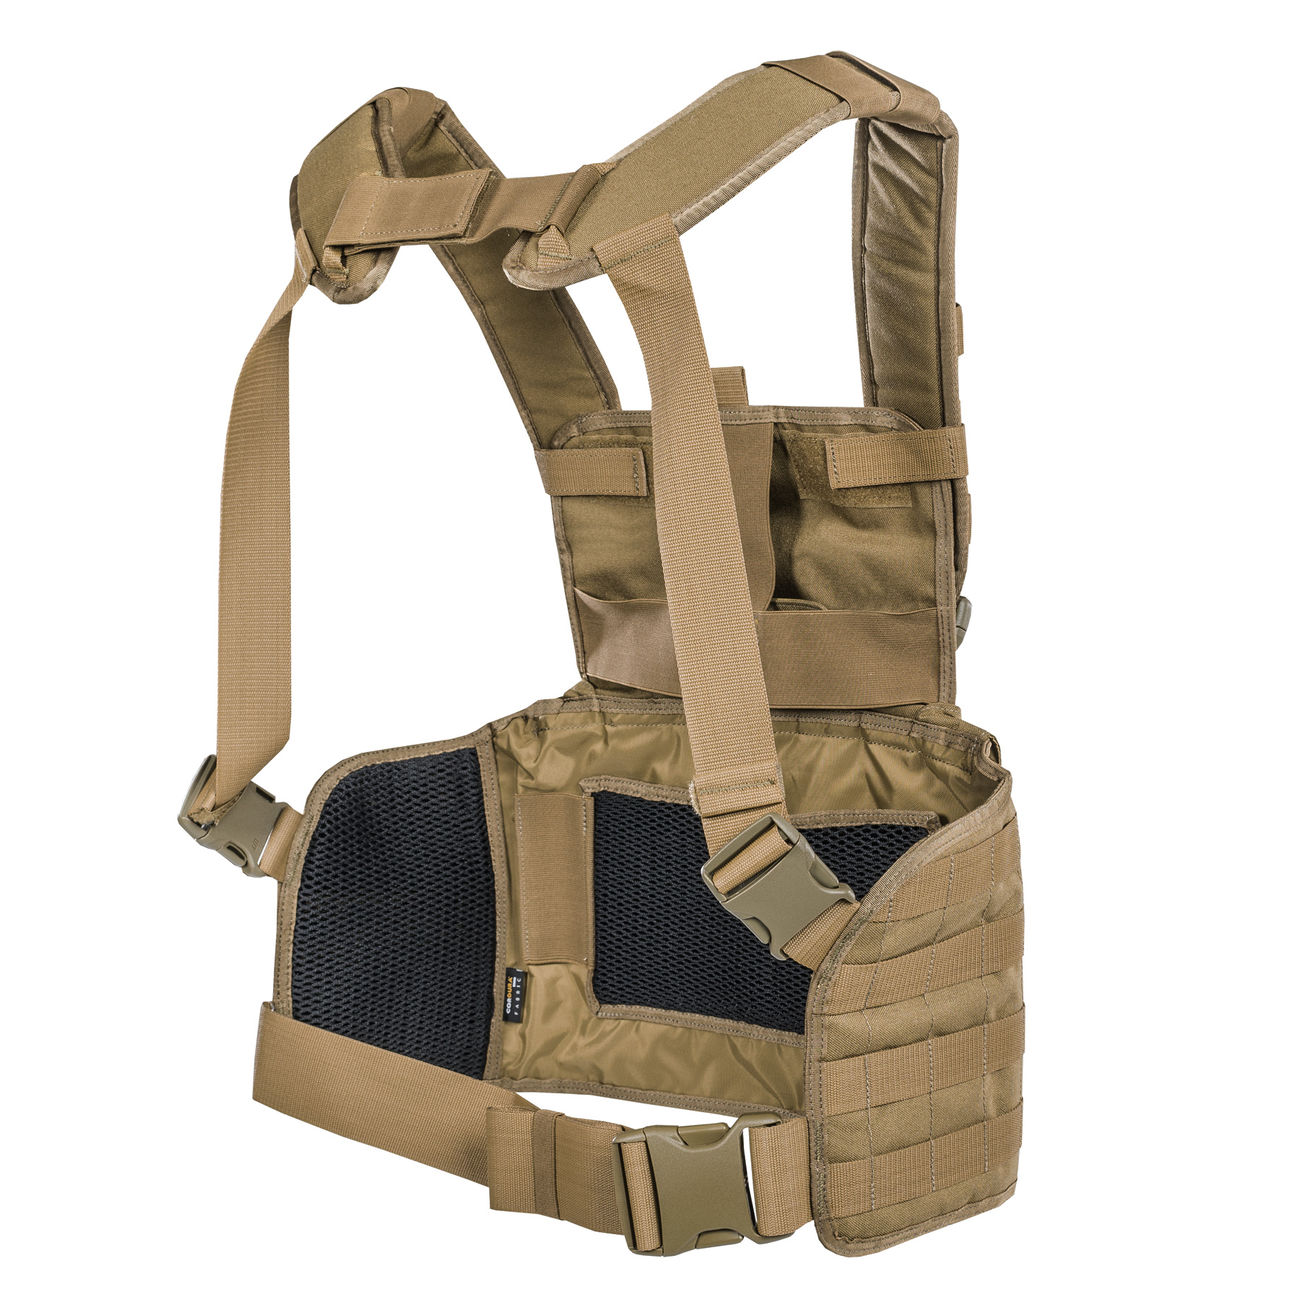 TT Chest Rig Modular coyote brown 2